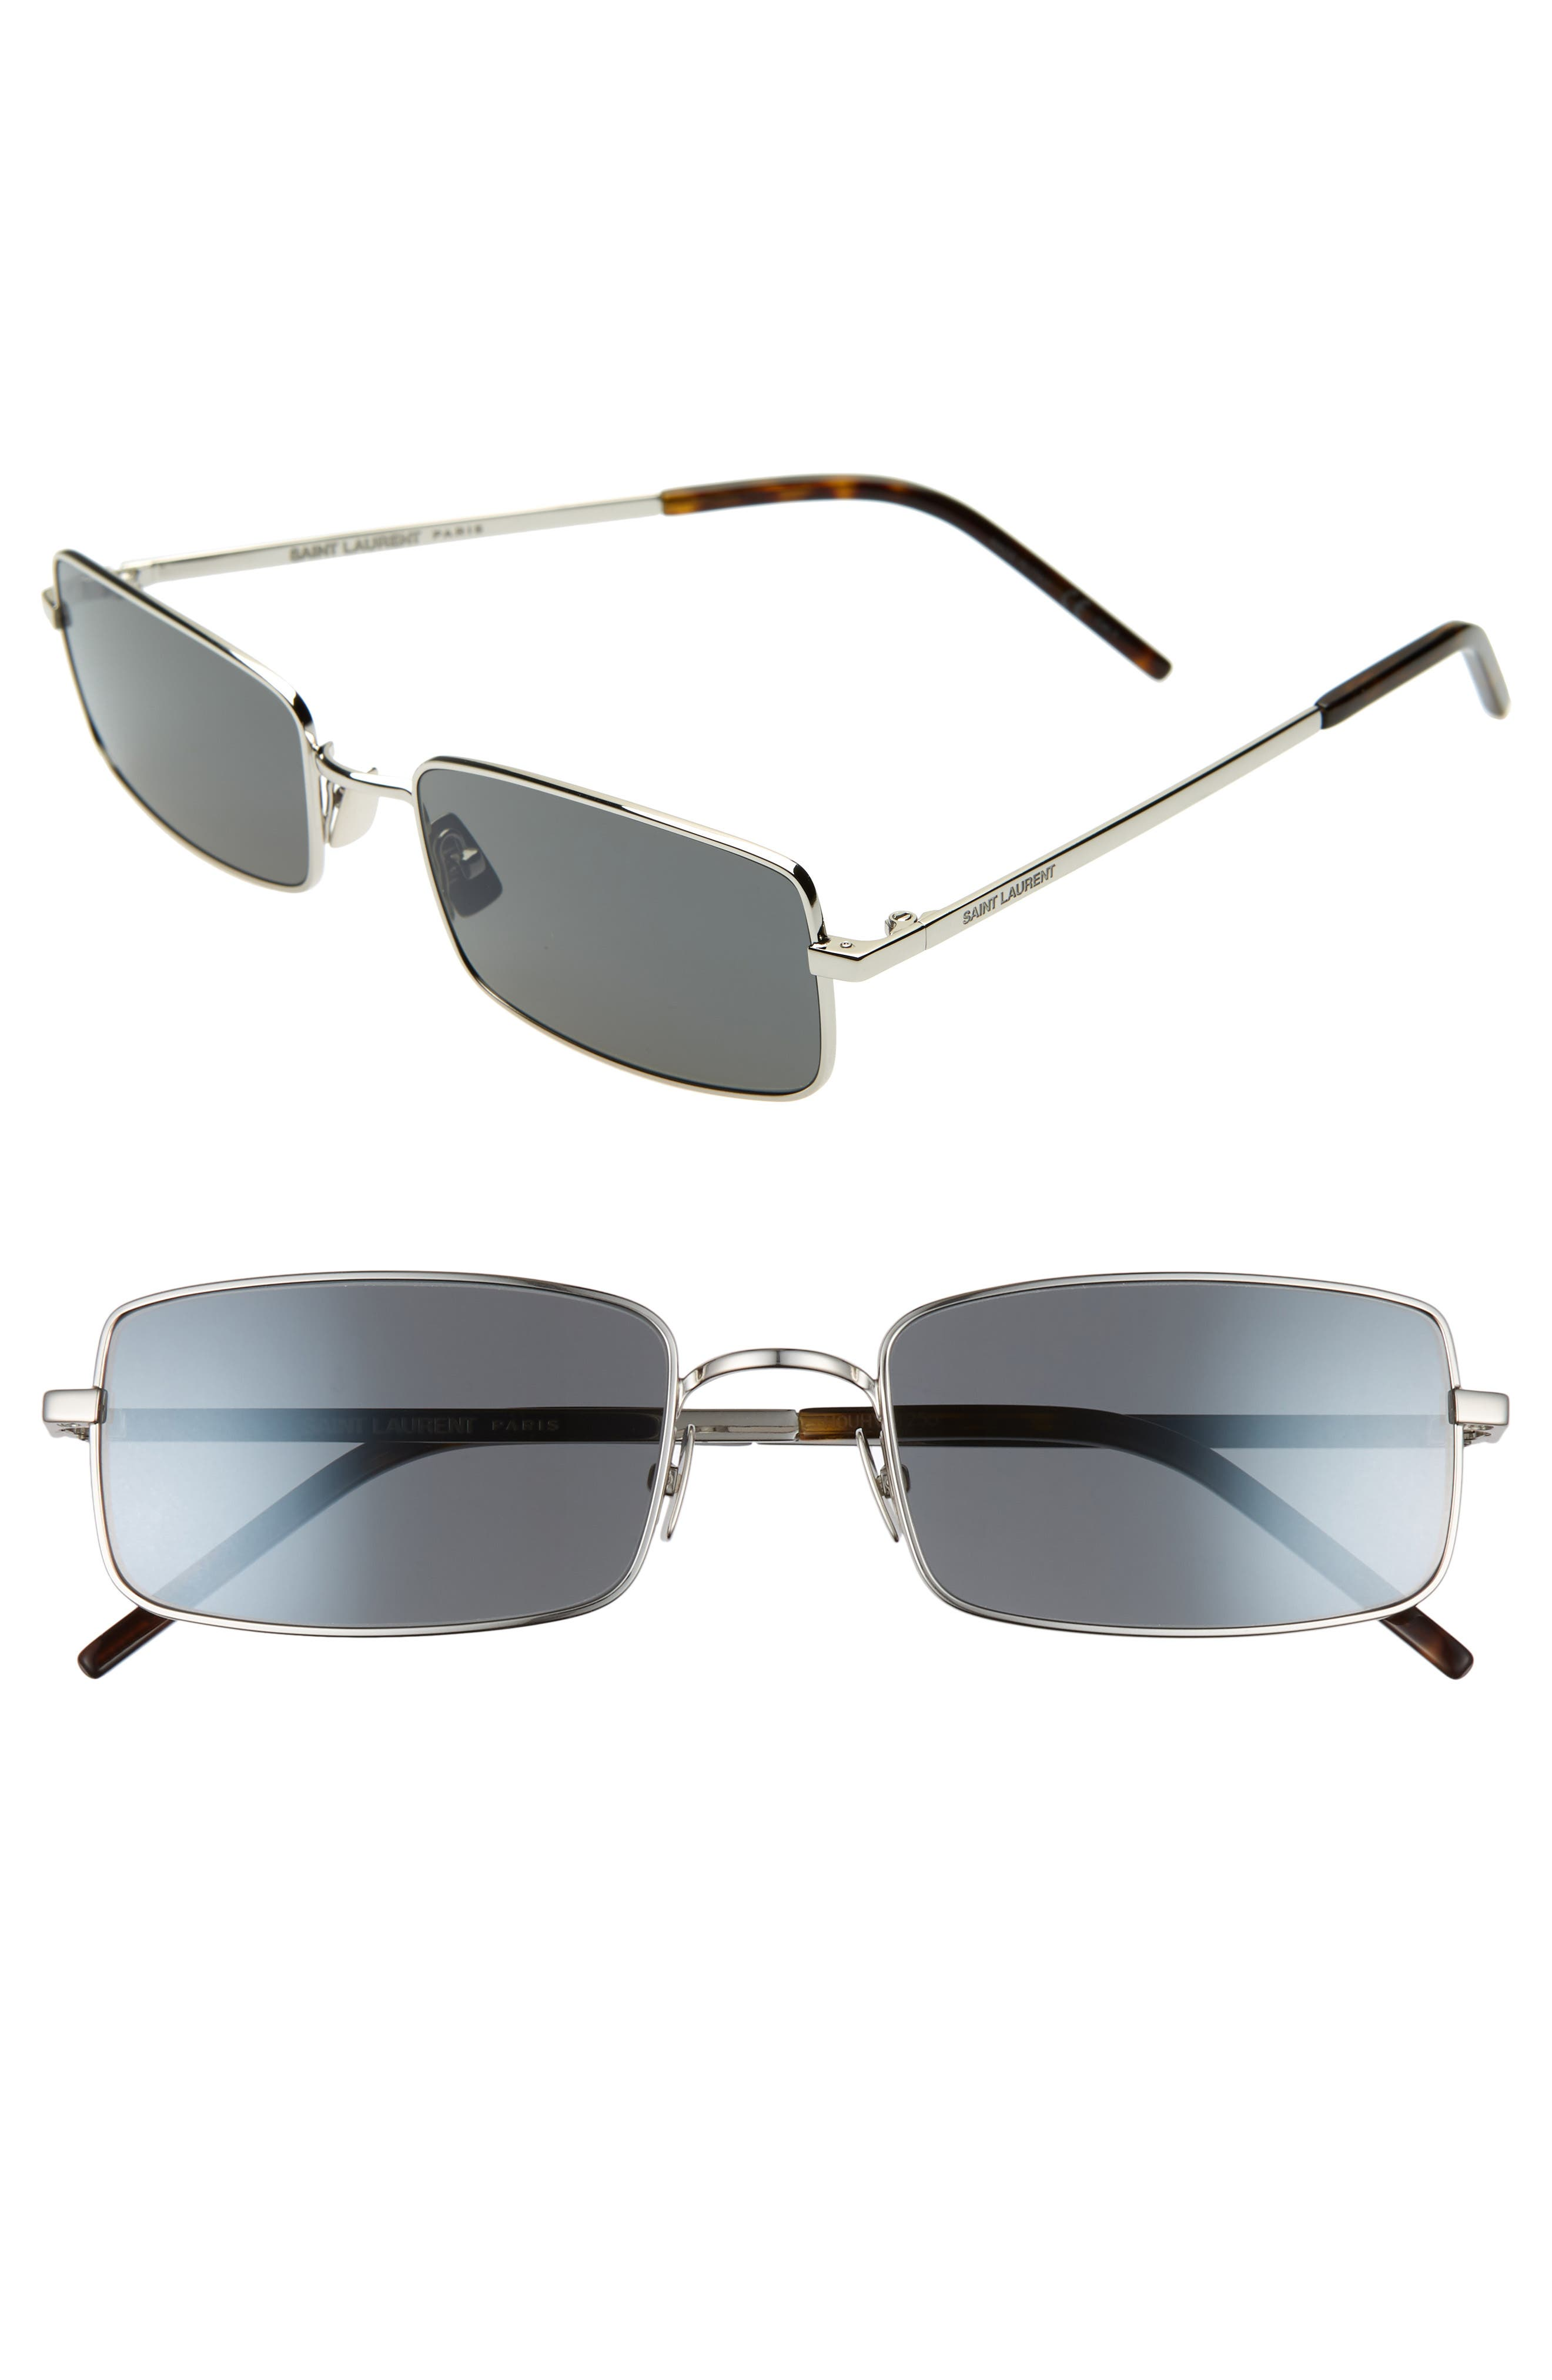 56mm Rectangle Sunglasses,                         Main,                         color, SILVER/ GREY